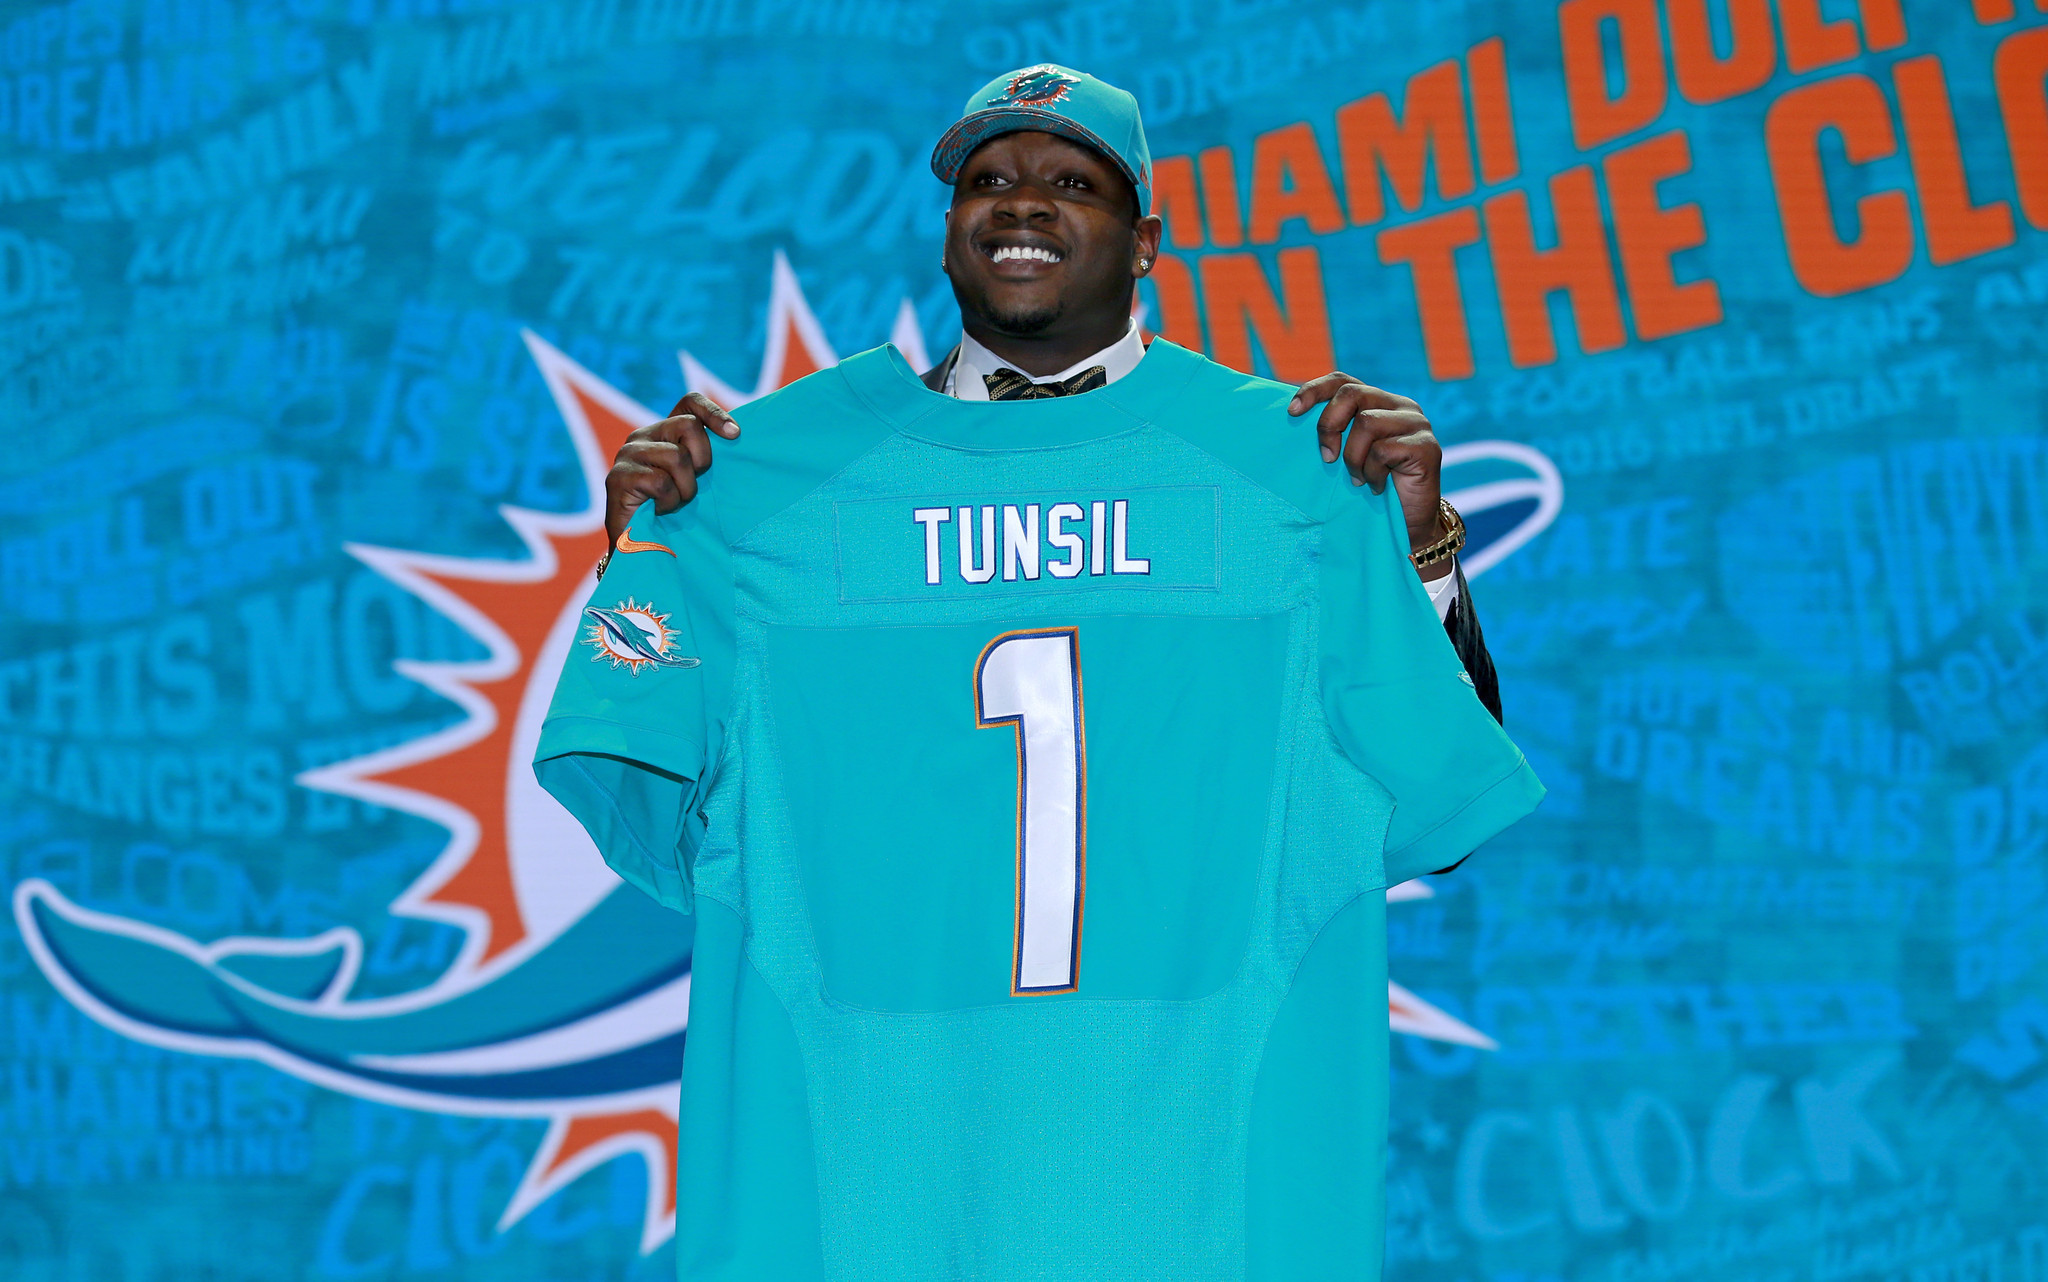 Ole Miss coach was shocked by Laremy Tunsil s ments at NFL